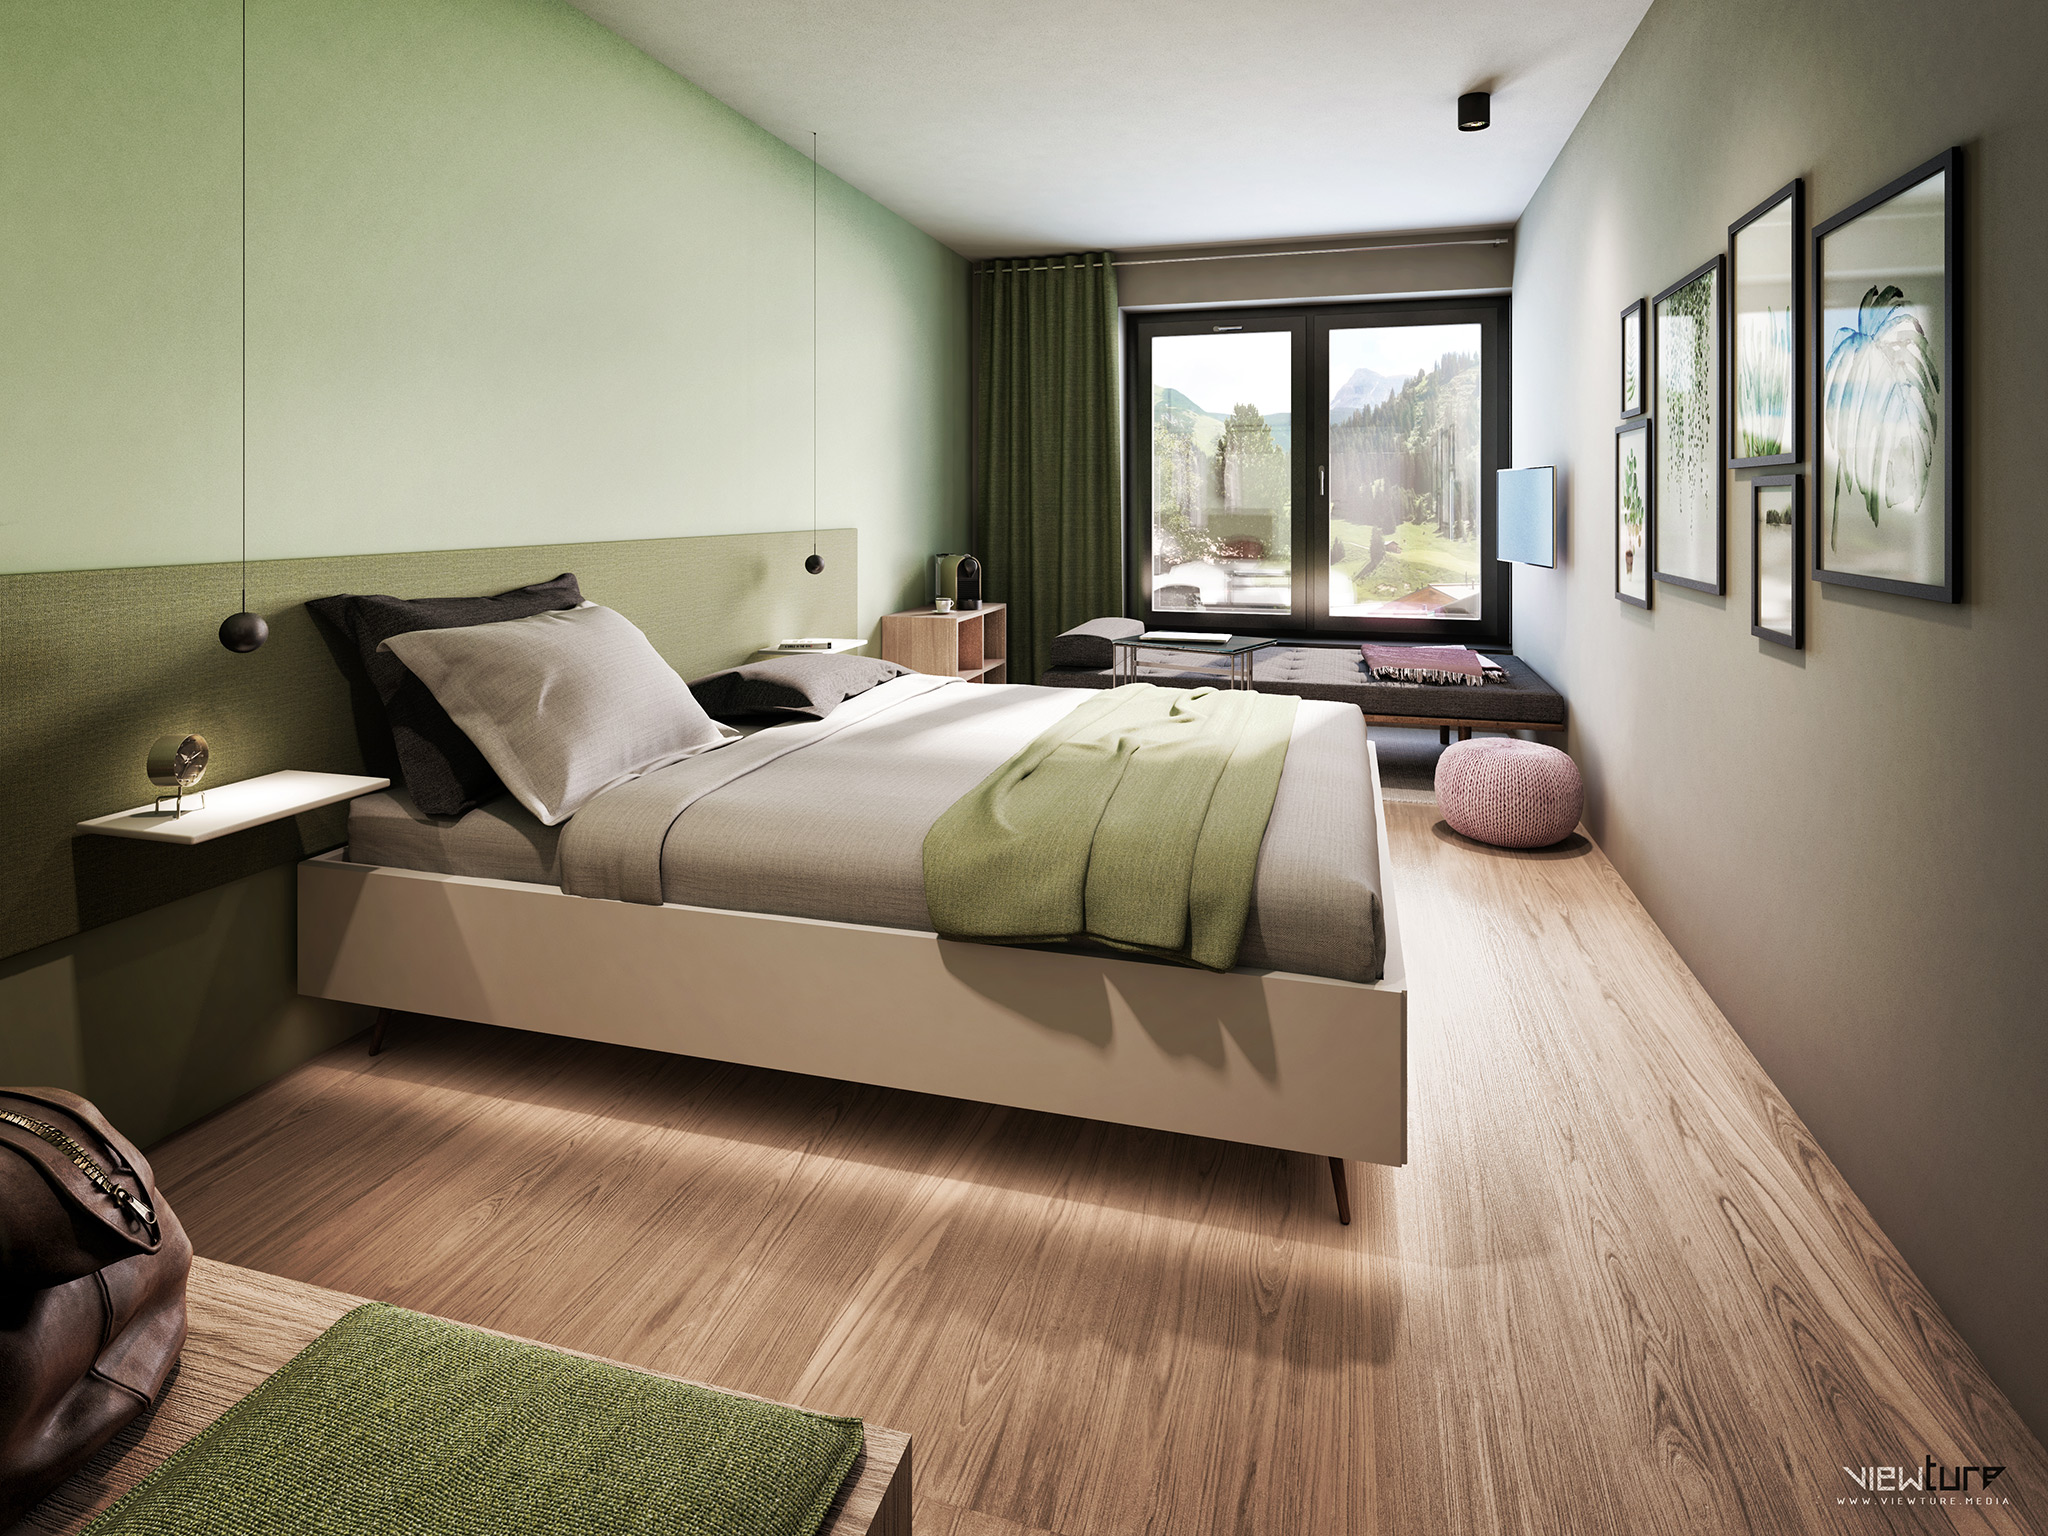 Viewture Visualisierung Suite Hotel young casual style